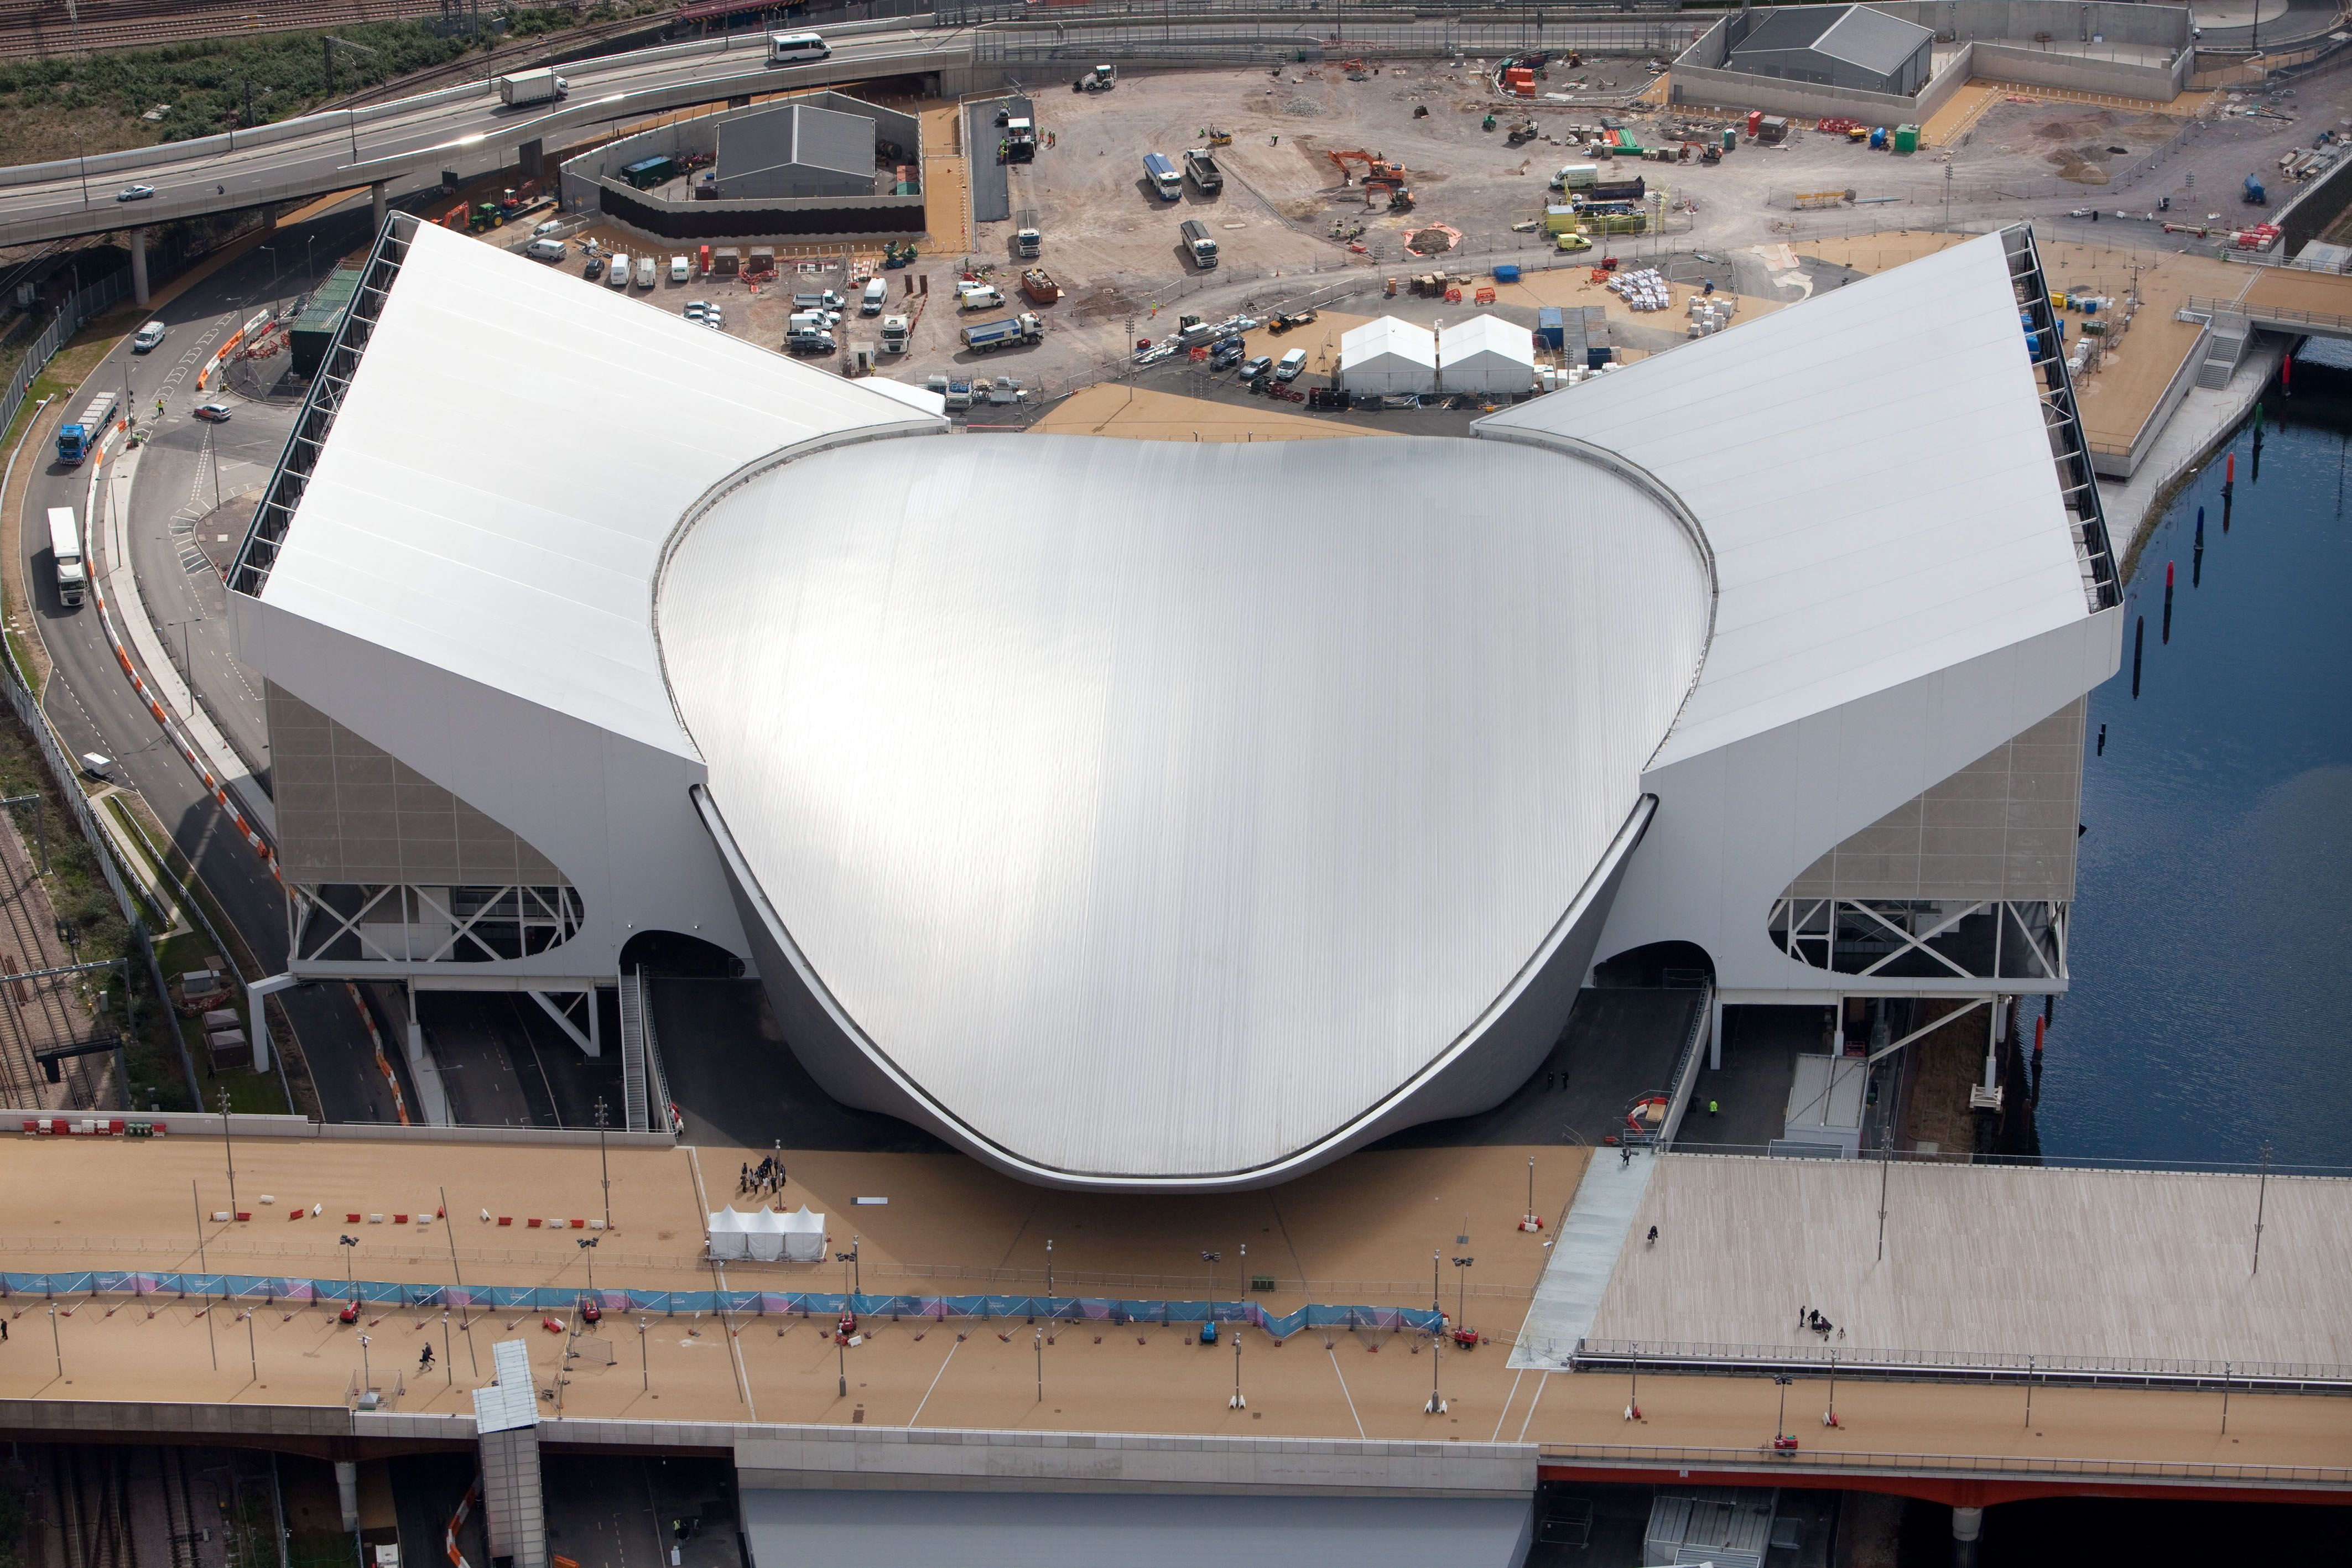 Geometric oval with two wings attached as the Aquatics Centre Designed for the 2012 London